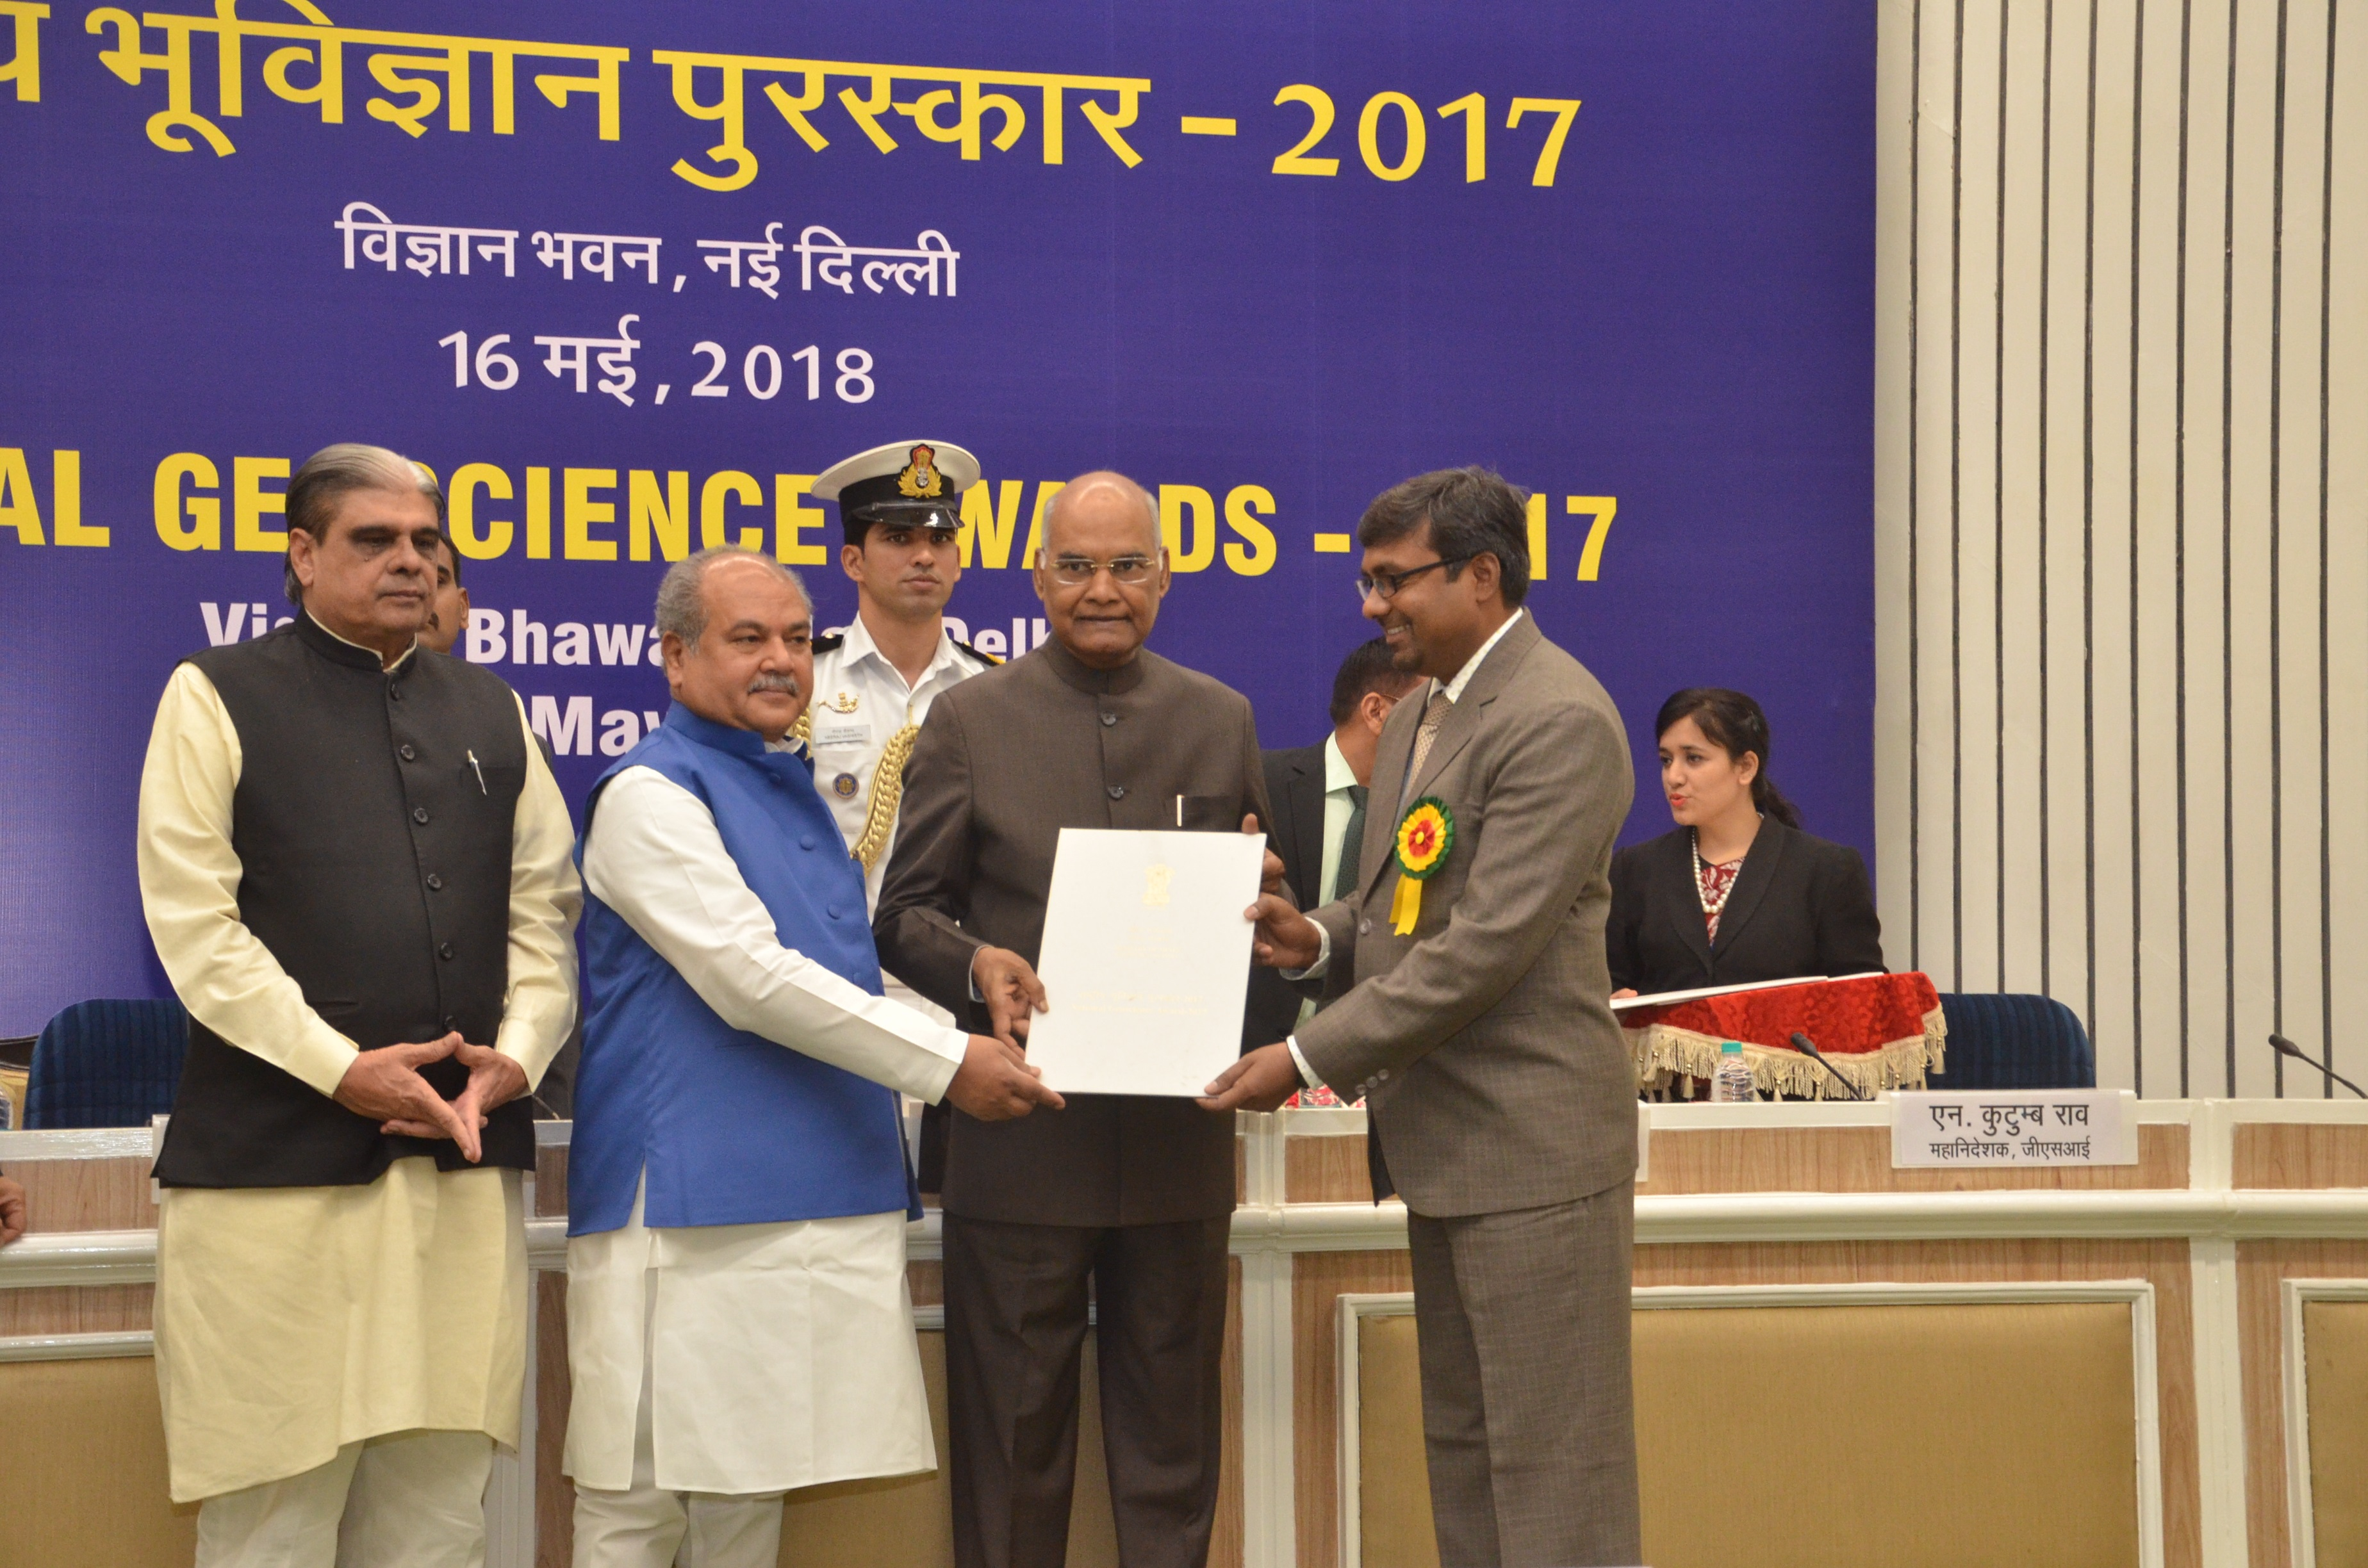 Dr. Subash Chandra, Principal Scientist, CSIR- NGRI, Hyderabad, has been selected for the prestigious National Geoscience Award (earlier known as National Mineral Award) by the Ministry of Mines, Govt. of India for the year 2017 for their significant contributions in the field of Groundwater Exploration (including project development, hydrogeological studies and management of groundwater resources) Team Award.